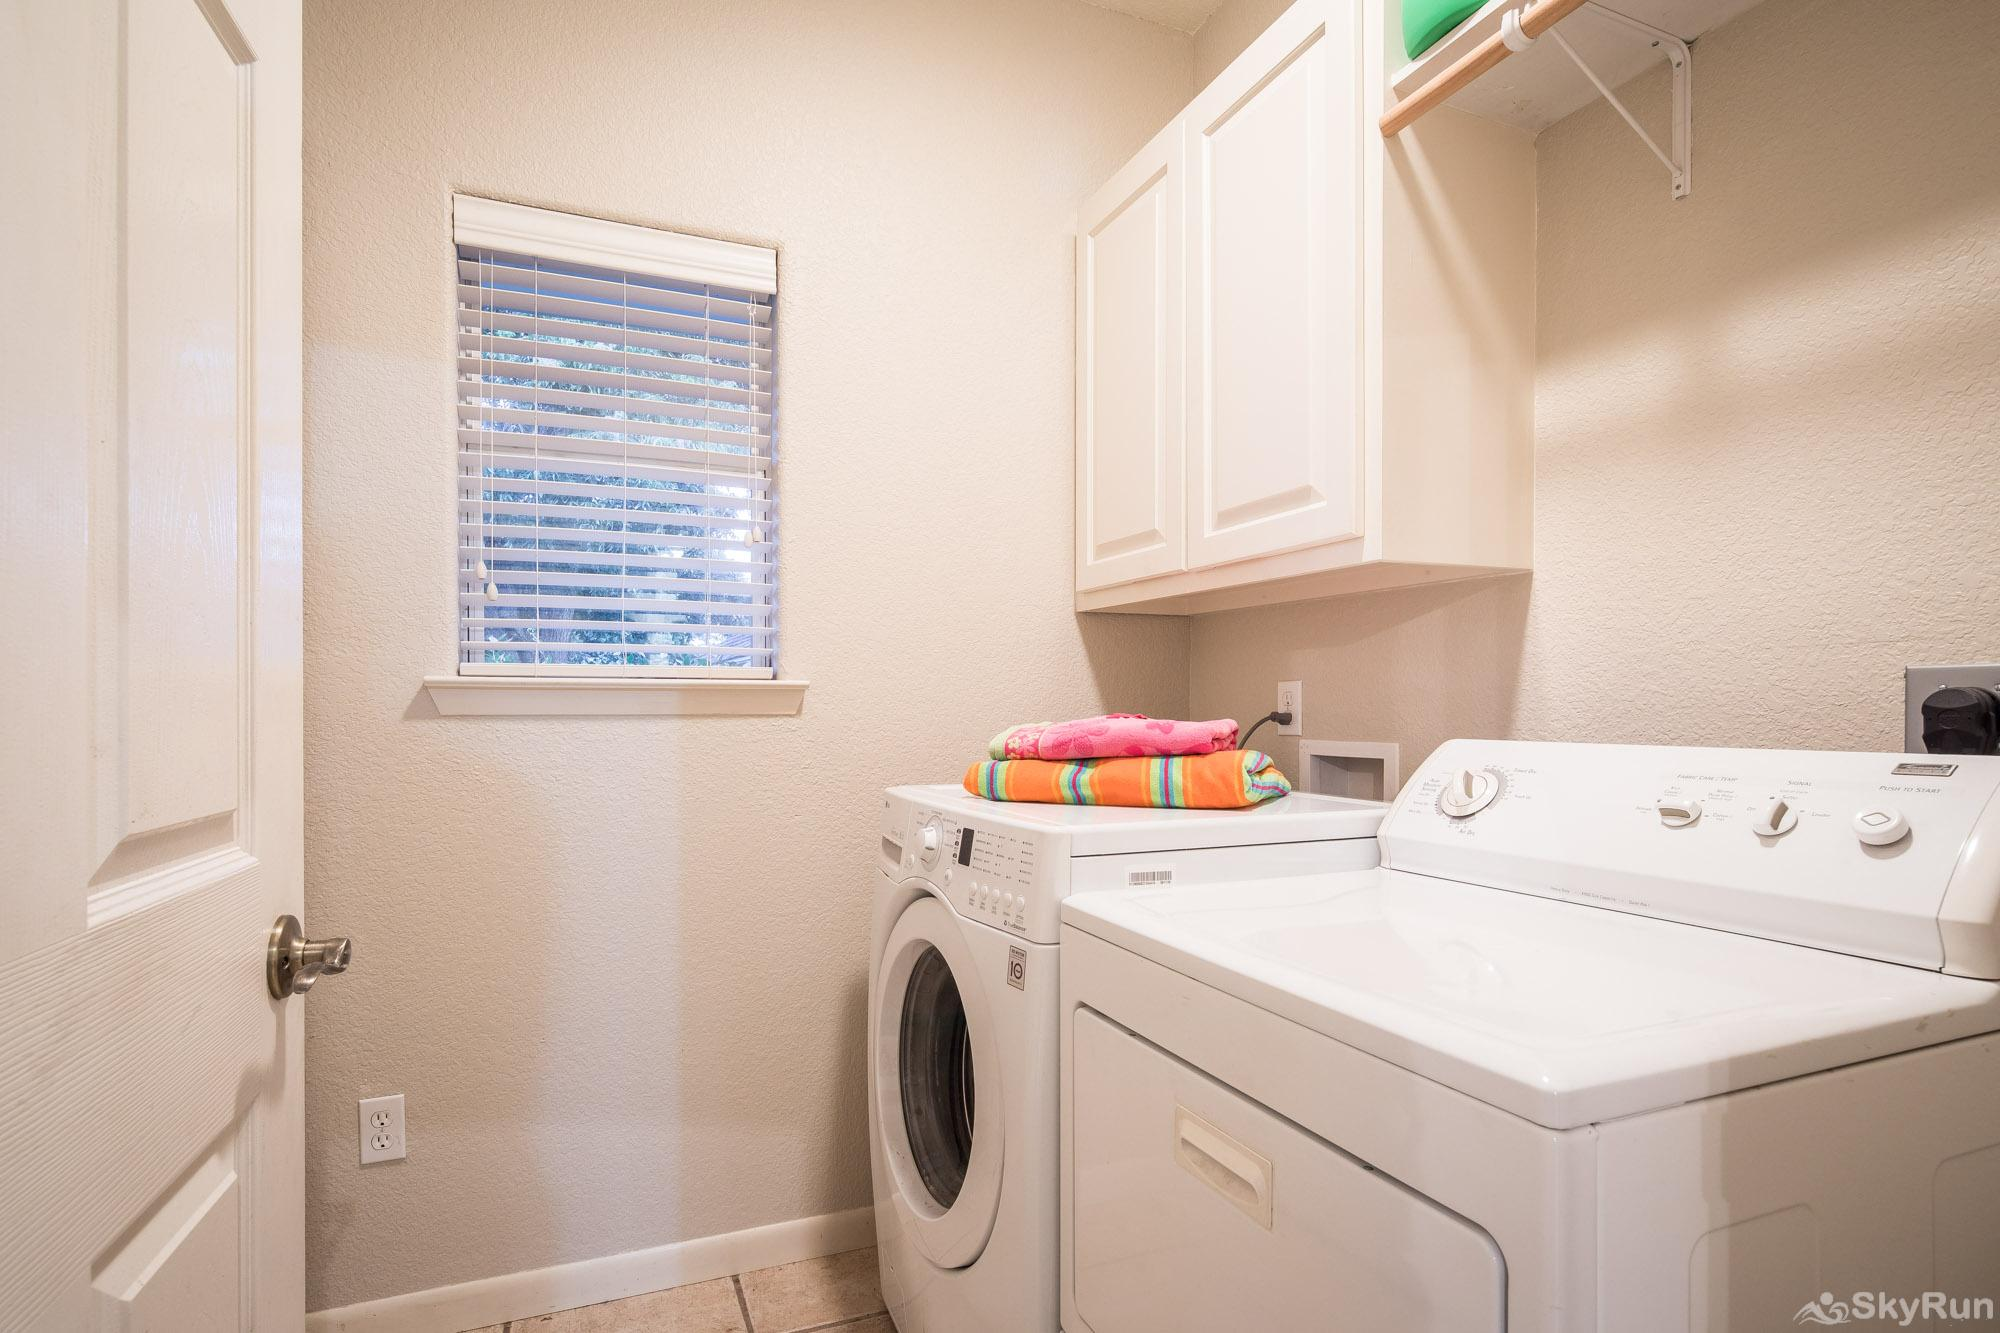 SERENITY SHORES Laundry Room